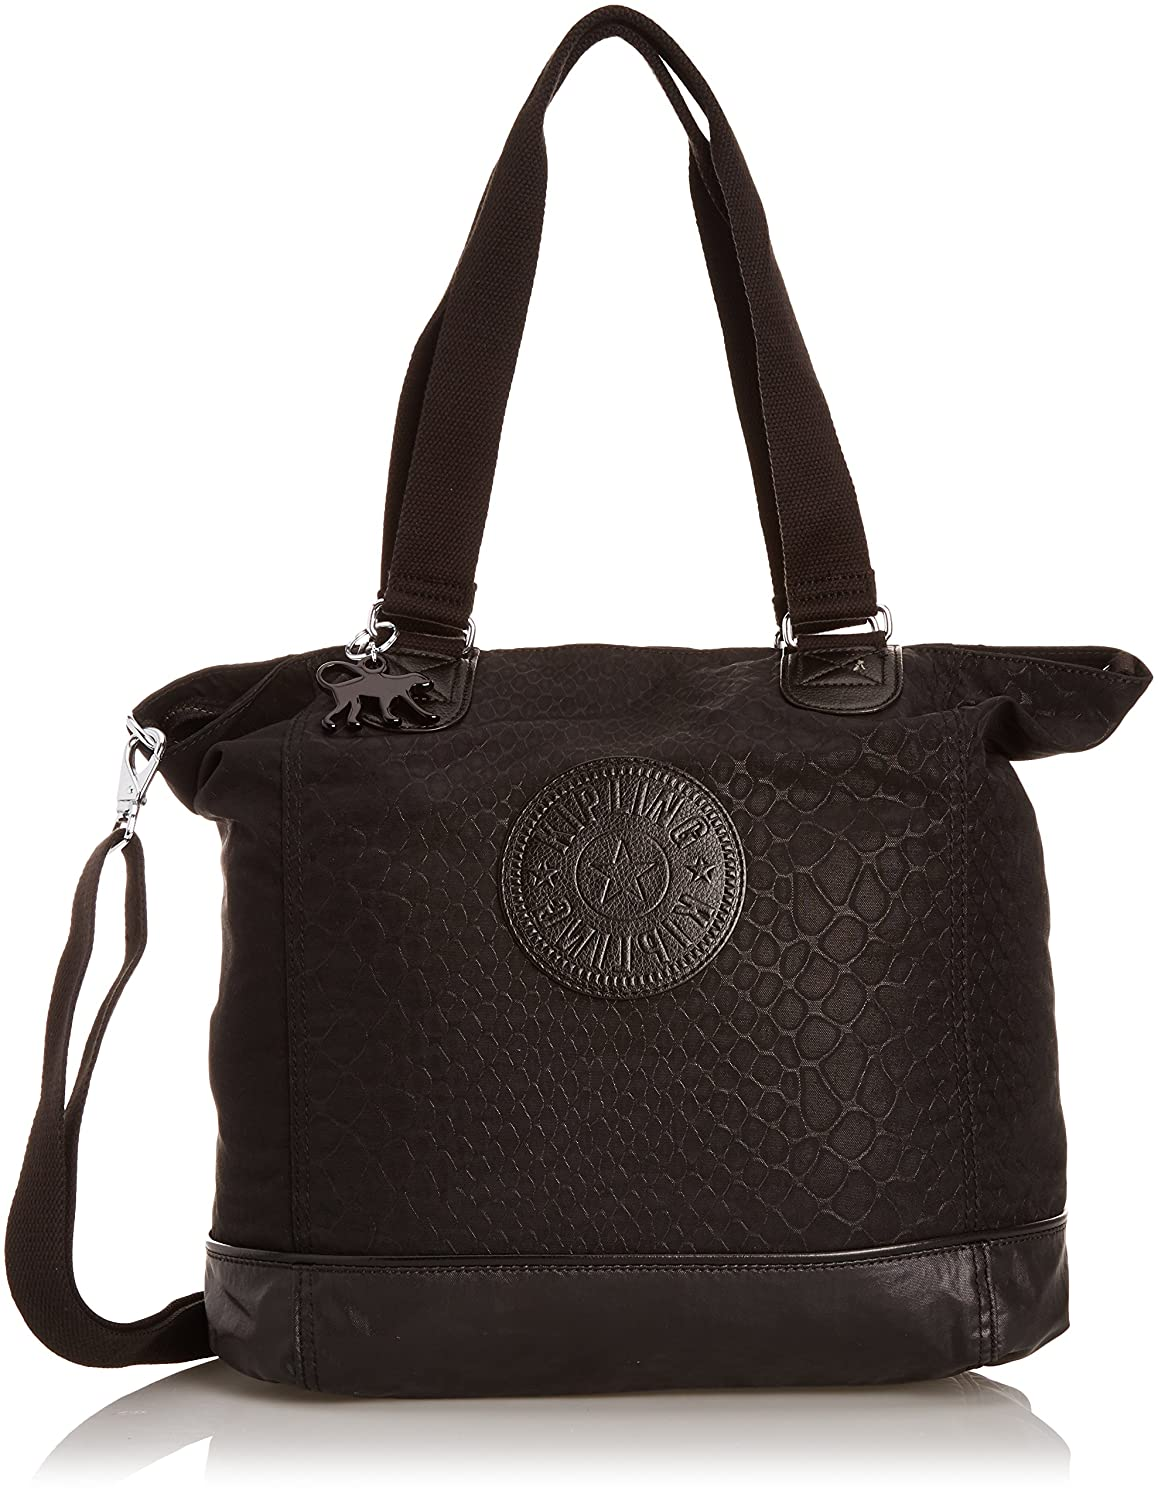 Kipling Shopper Combo Large Shoulder Bag With Removable Strap 34